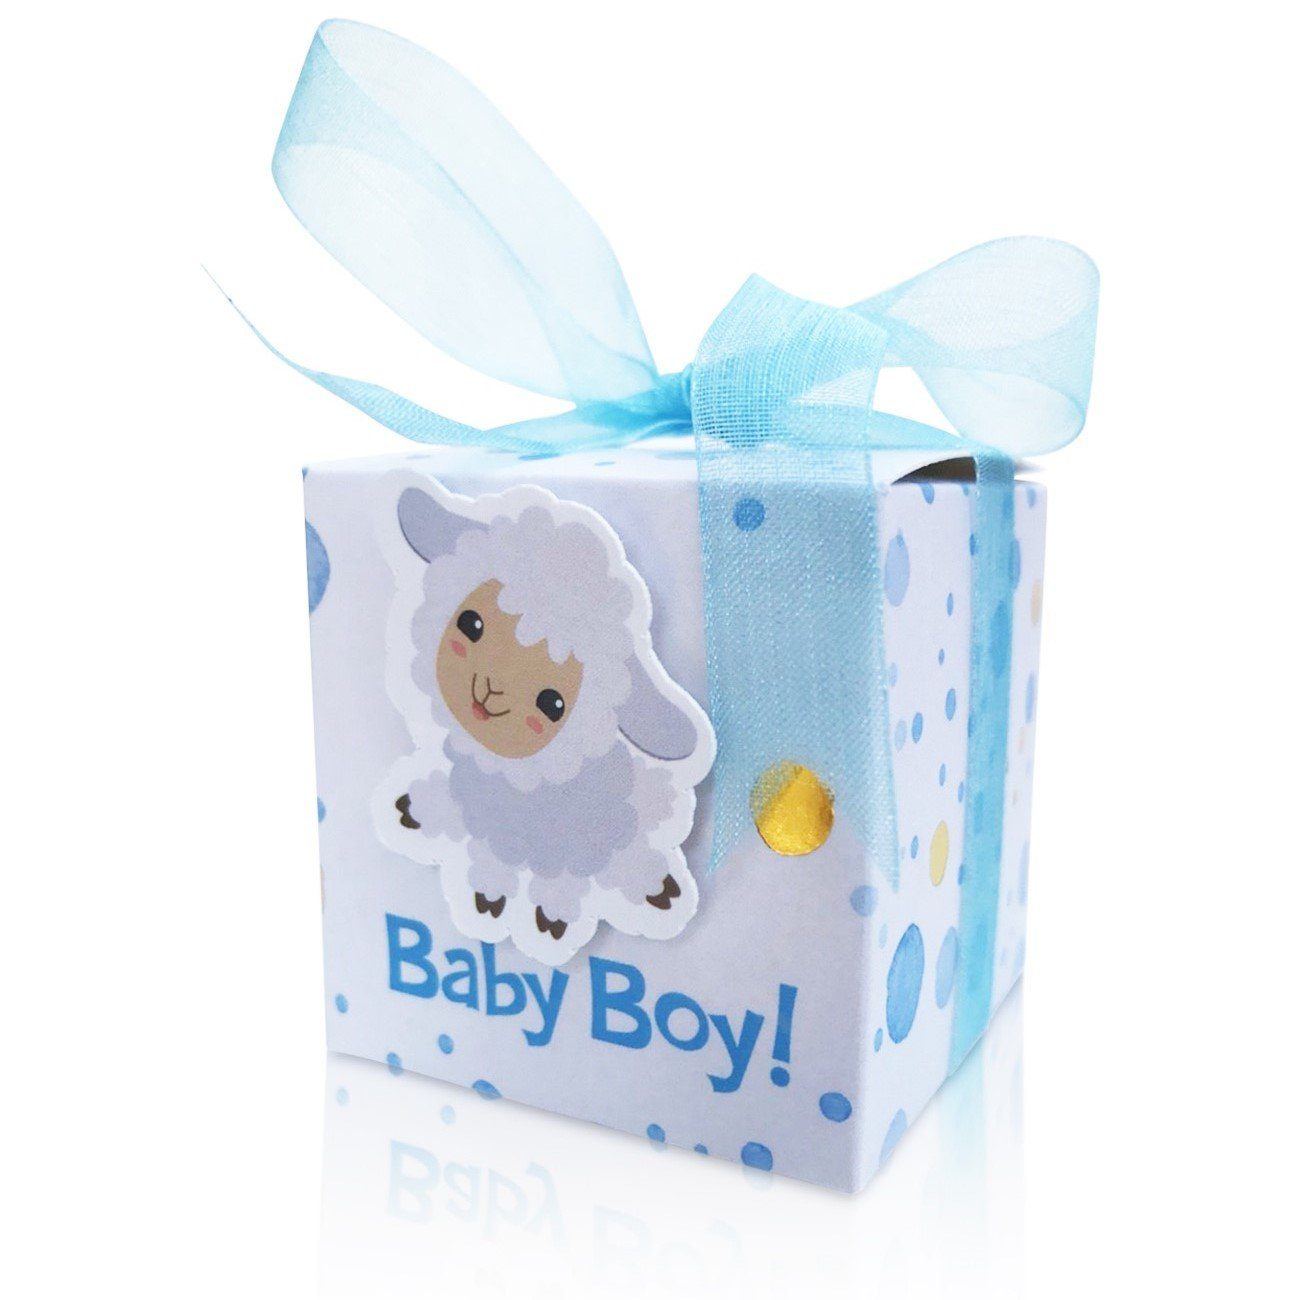 Partyedge Baby Shower Favor Boxes | Cute Little Baby Sheep Candy Box for Boys | Kids Party Favors | Baby Shower Favors | Party Decoration Supplies Gift Boxes 1st Birthday Boy 40 Pieces+Ribbons(Blue)